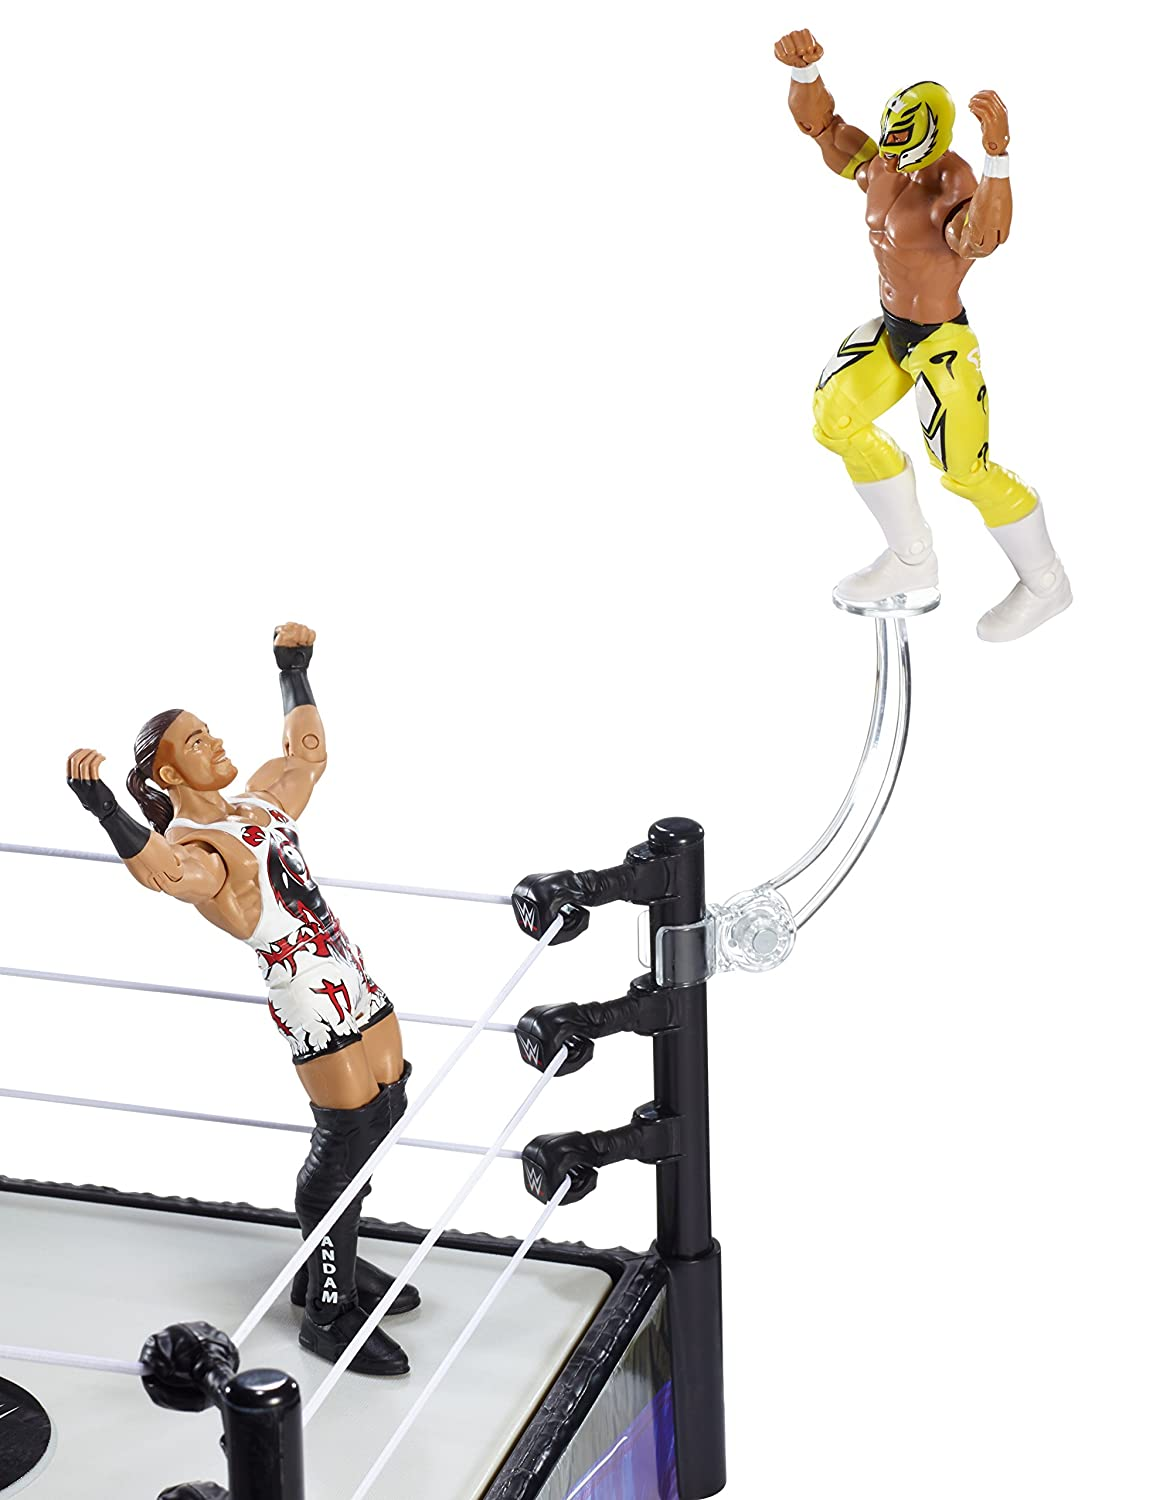 amazon com wwebattle pack series 33 rob van dam vs rey